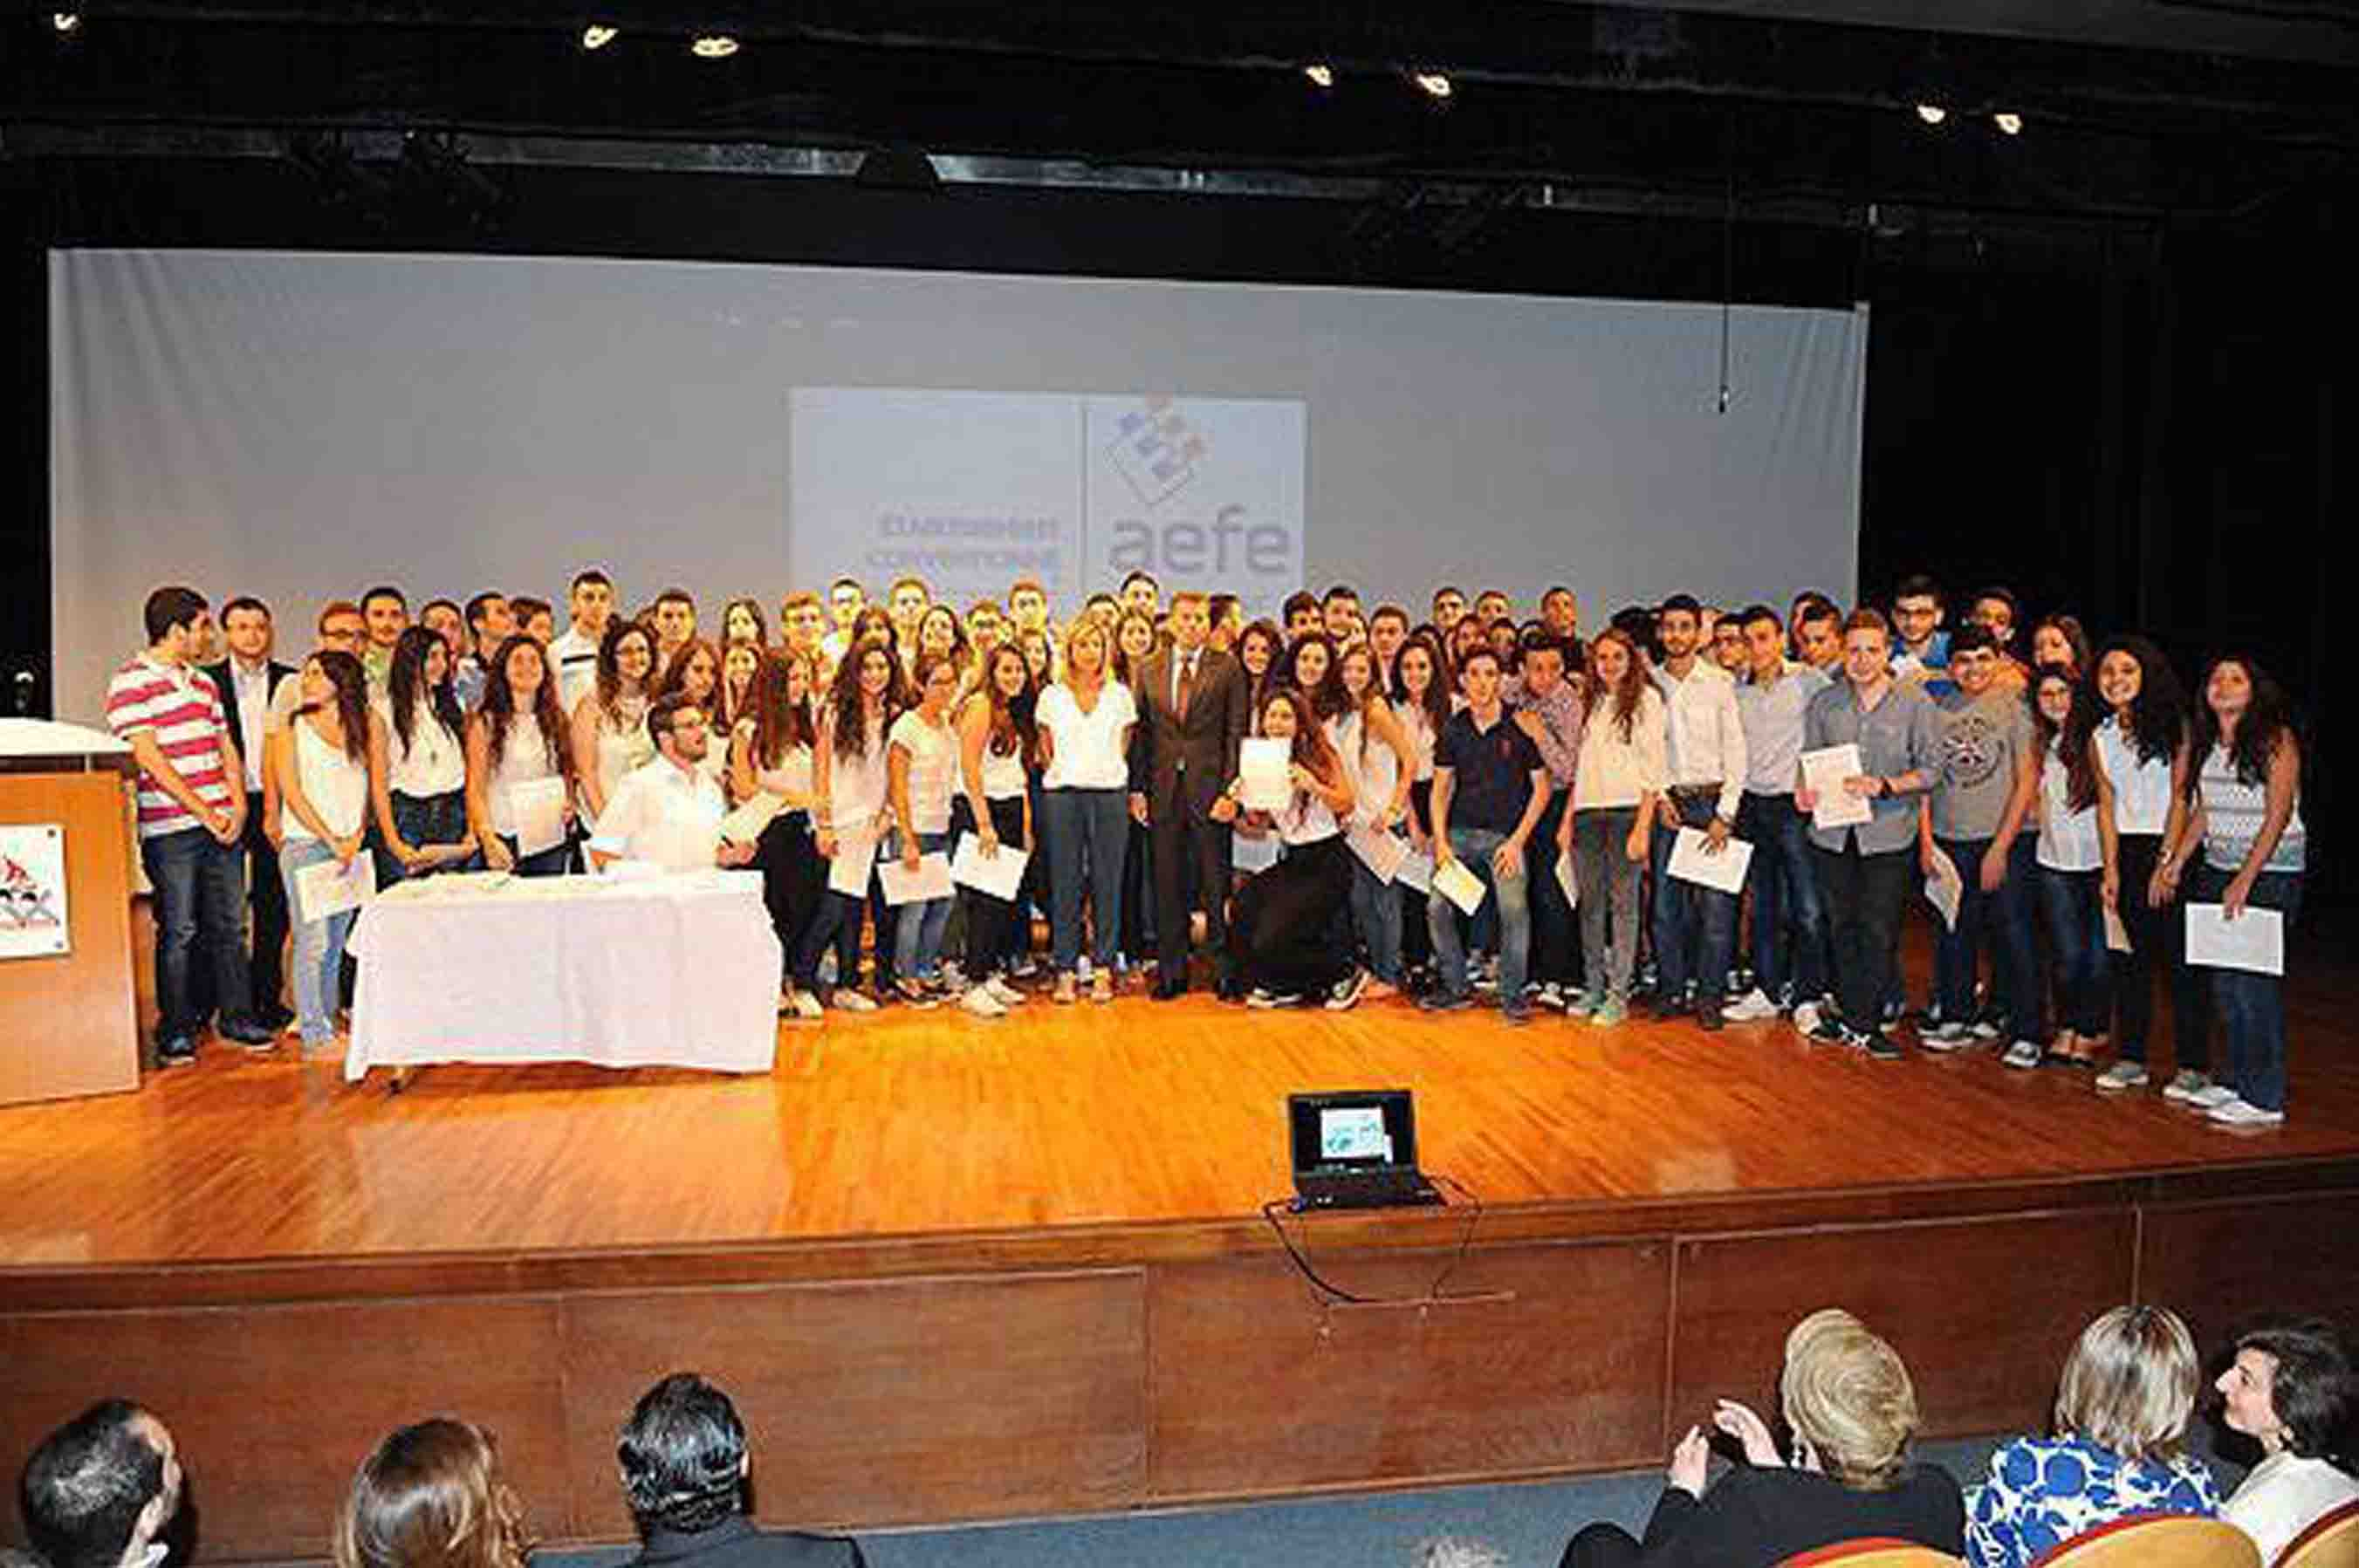 Cambridge esol certification rafic hariri foundation the lyce abdul kader celebrated on september 24 2014 the cambridge esol certification of 330 students from grades 5 9 and 12 1betcityfo Images